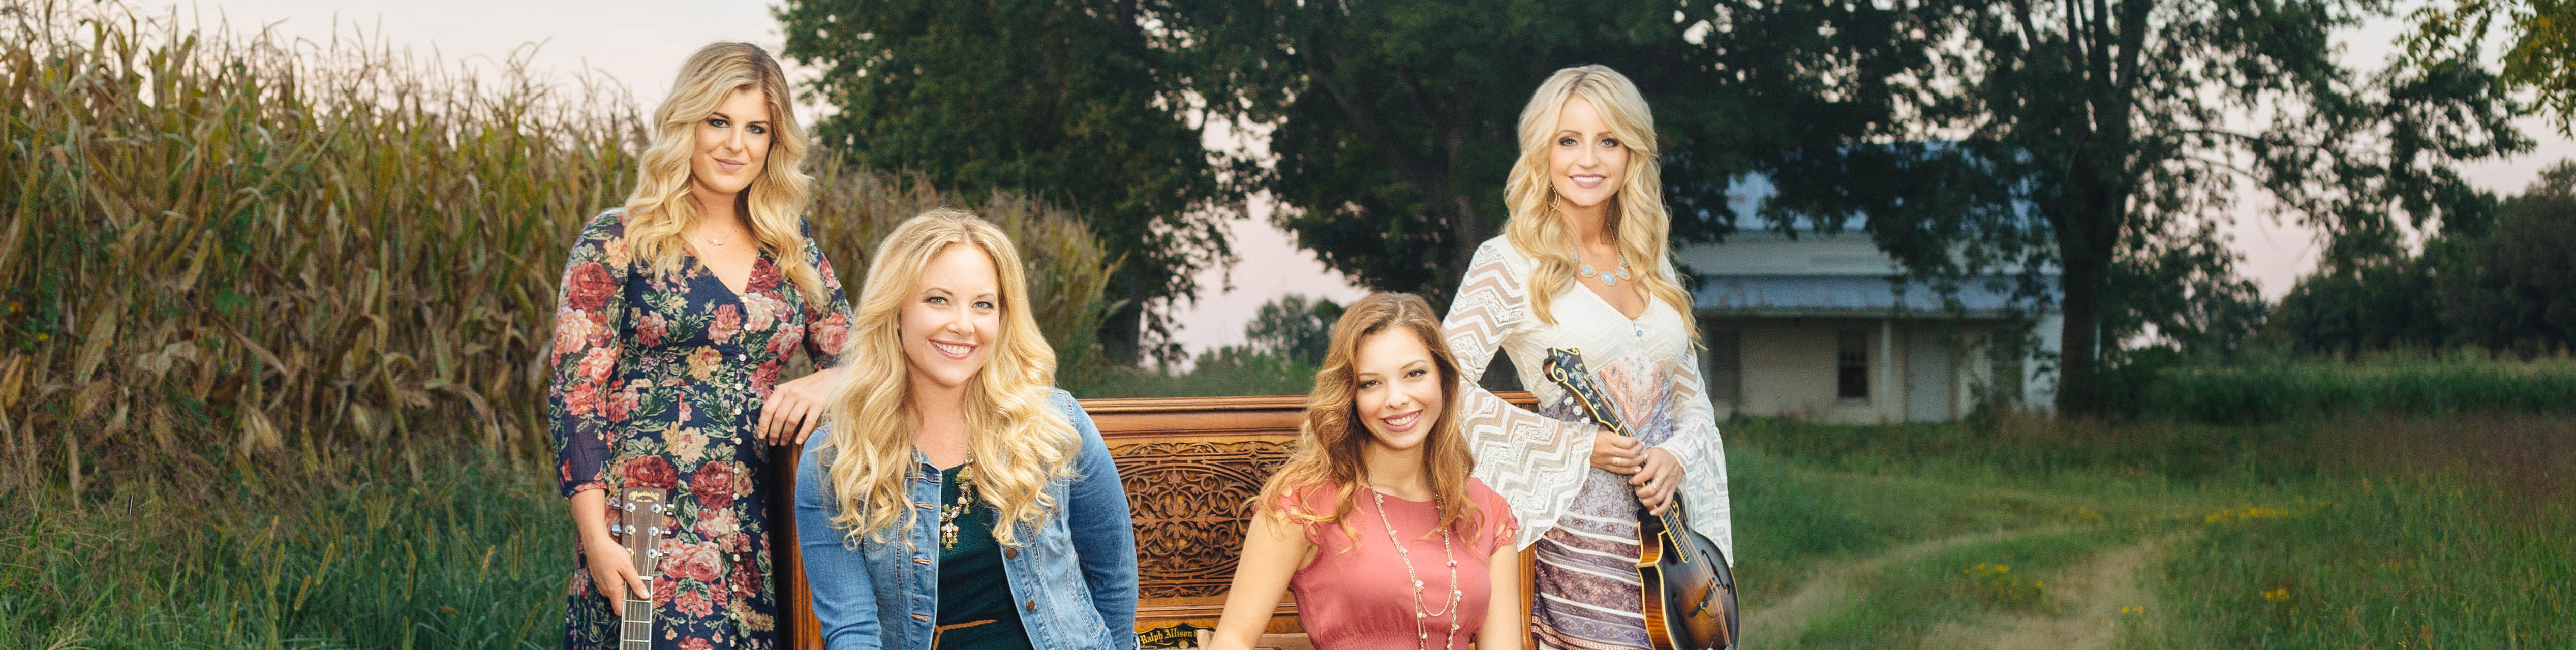 HIGHROAD IS BOUND FOR 'SOMEWHERE I'M GOING' SEPTEMBER 30